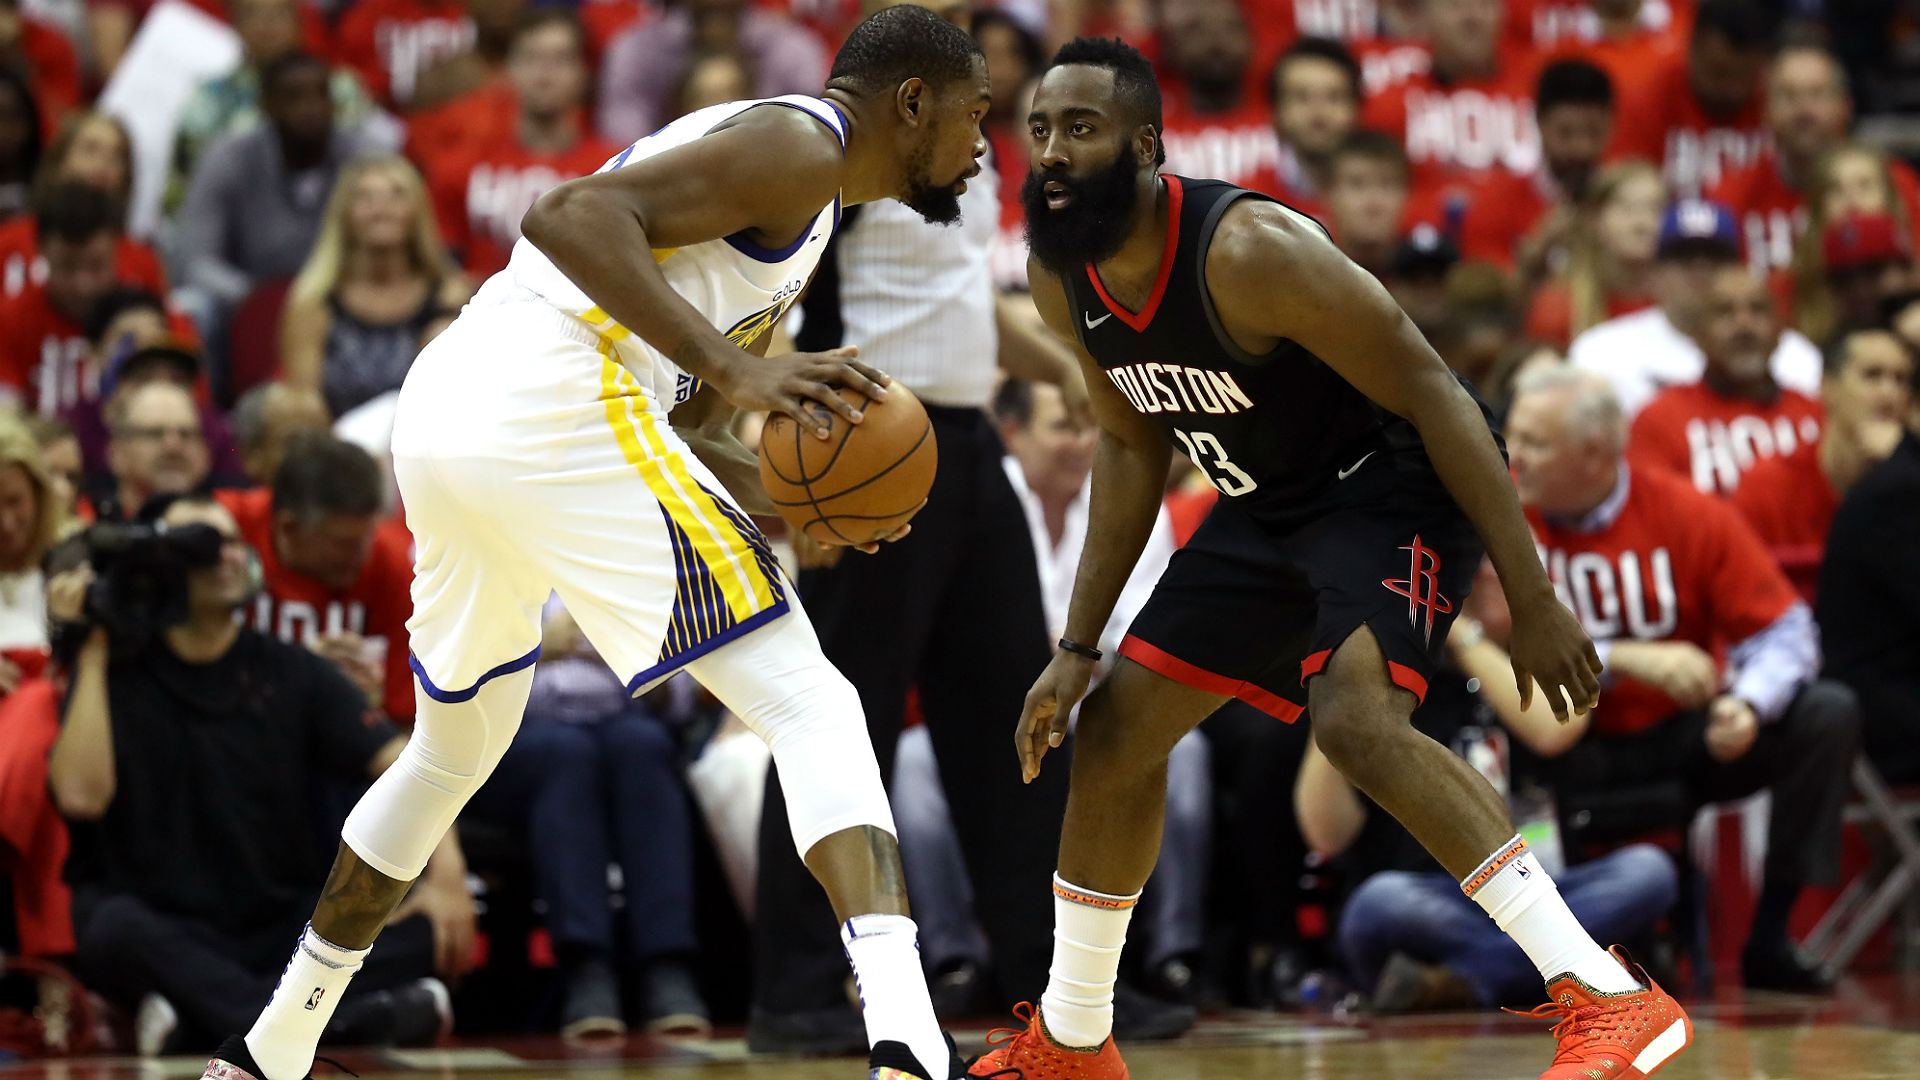 Basketball: Experience key against league-best Houston Rockets, says Steve Kerr